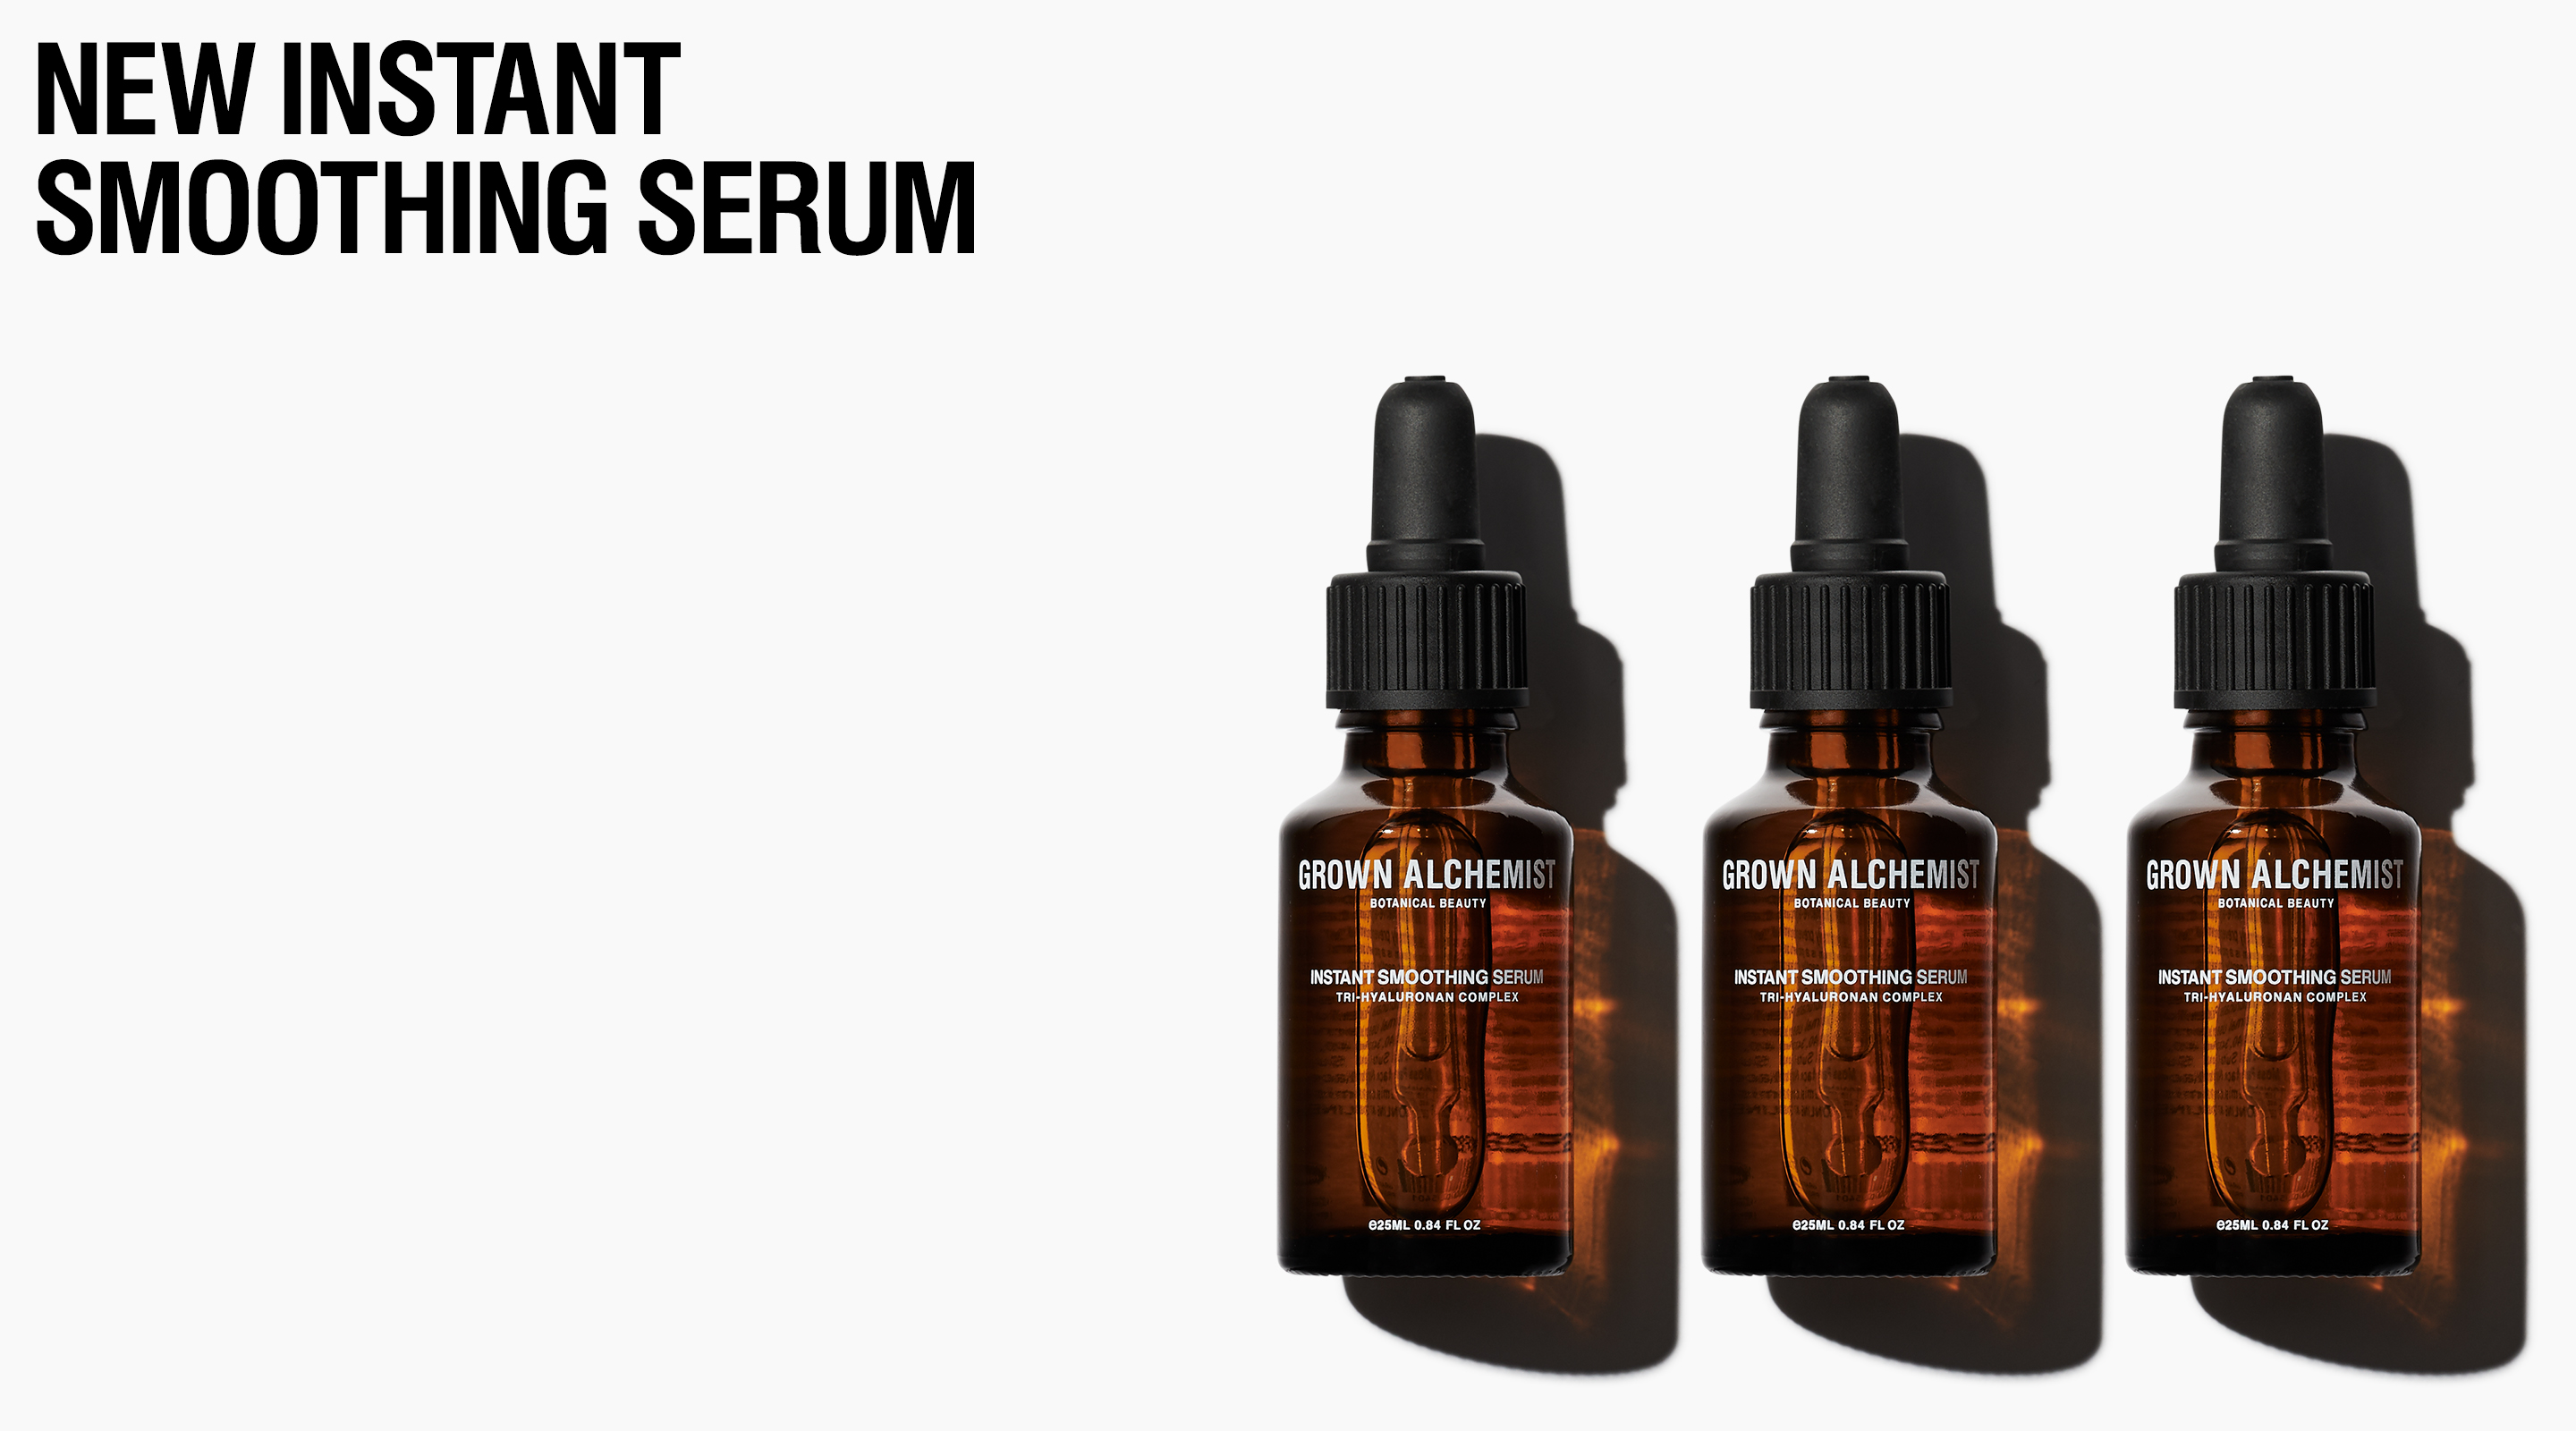 Grown Alchemist NEW INSTANT SMOOTHING SERUM